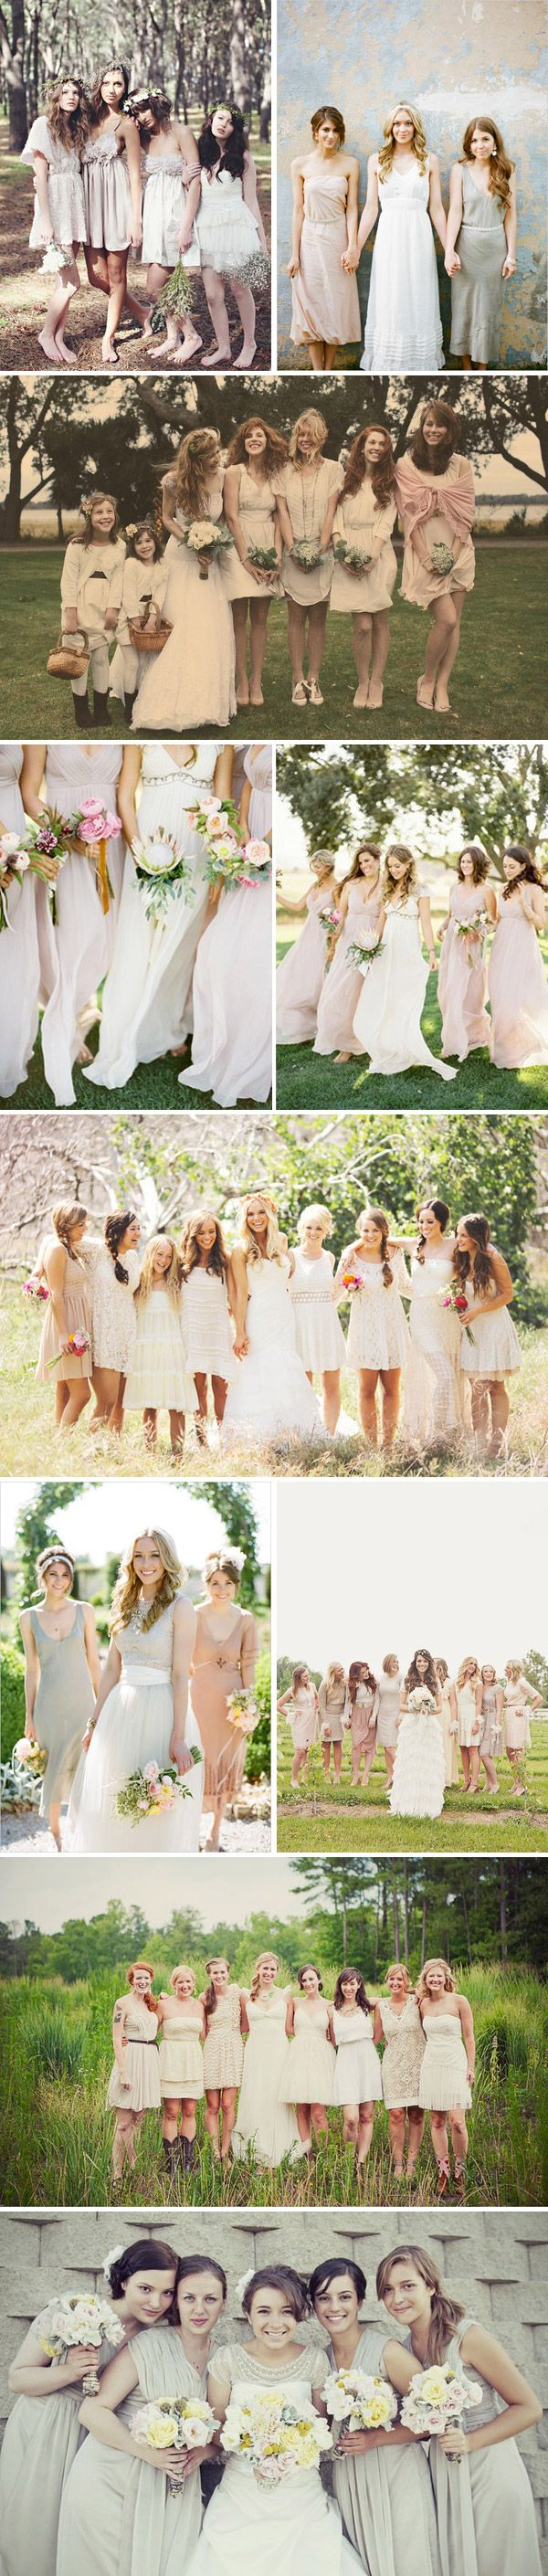 white/off-white/light colored bridesmaids palette...I can see this. I like how the girls have different bouquets